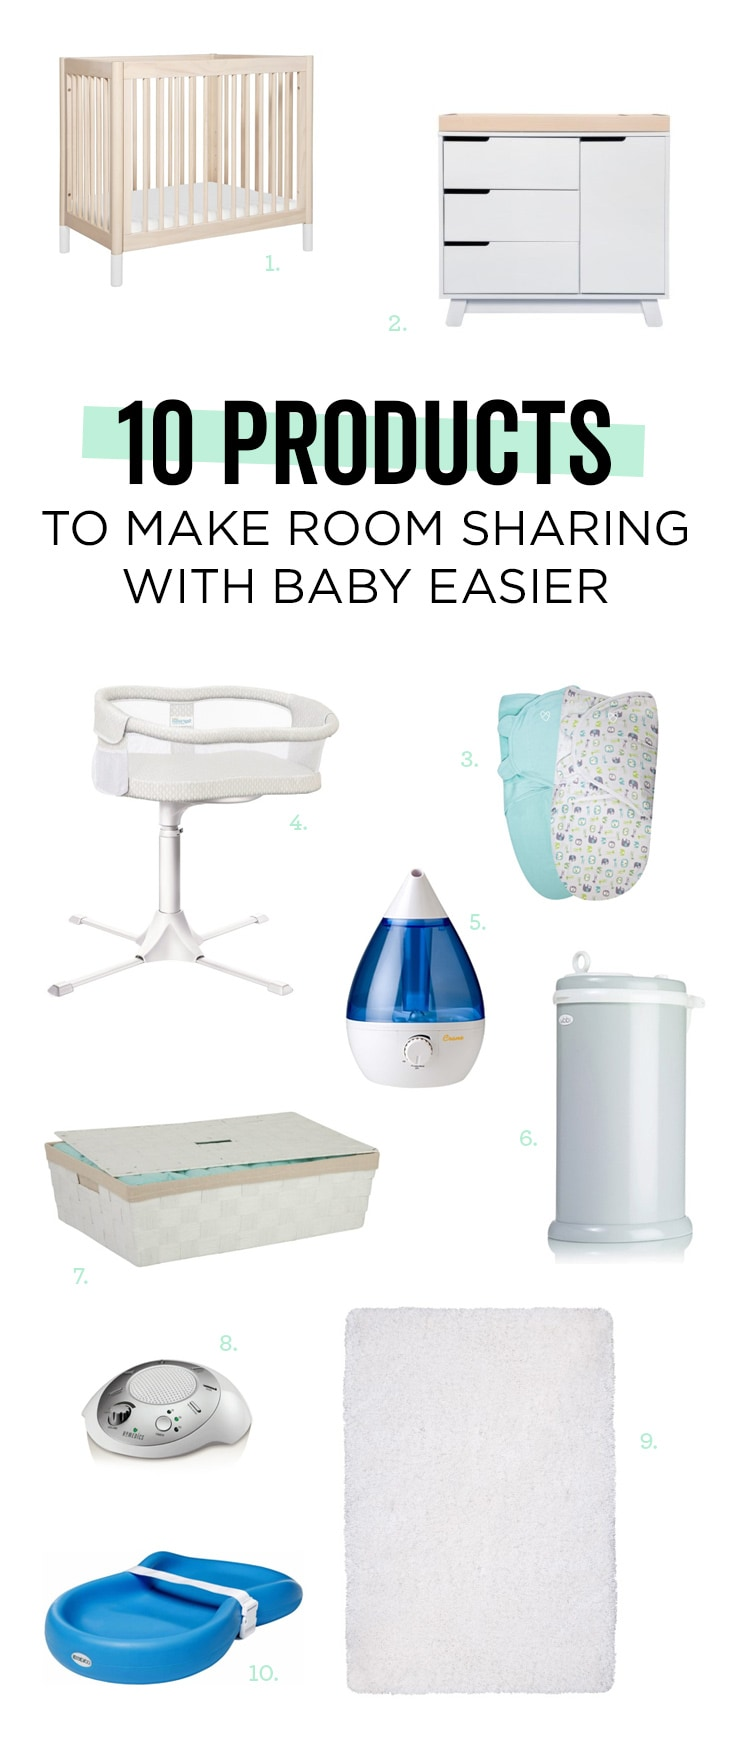 Whether you're sharing for a few months or the long haul, these will make life with your new roomie easier.